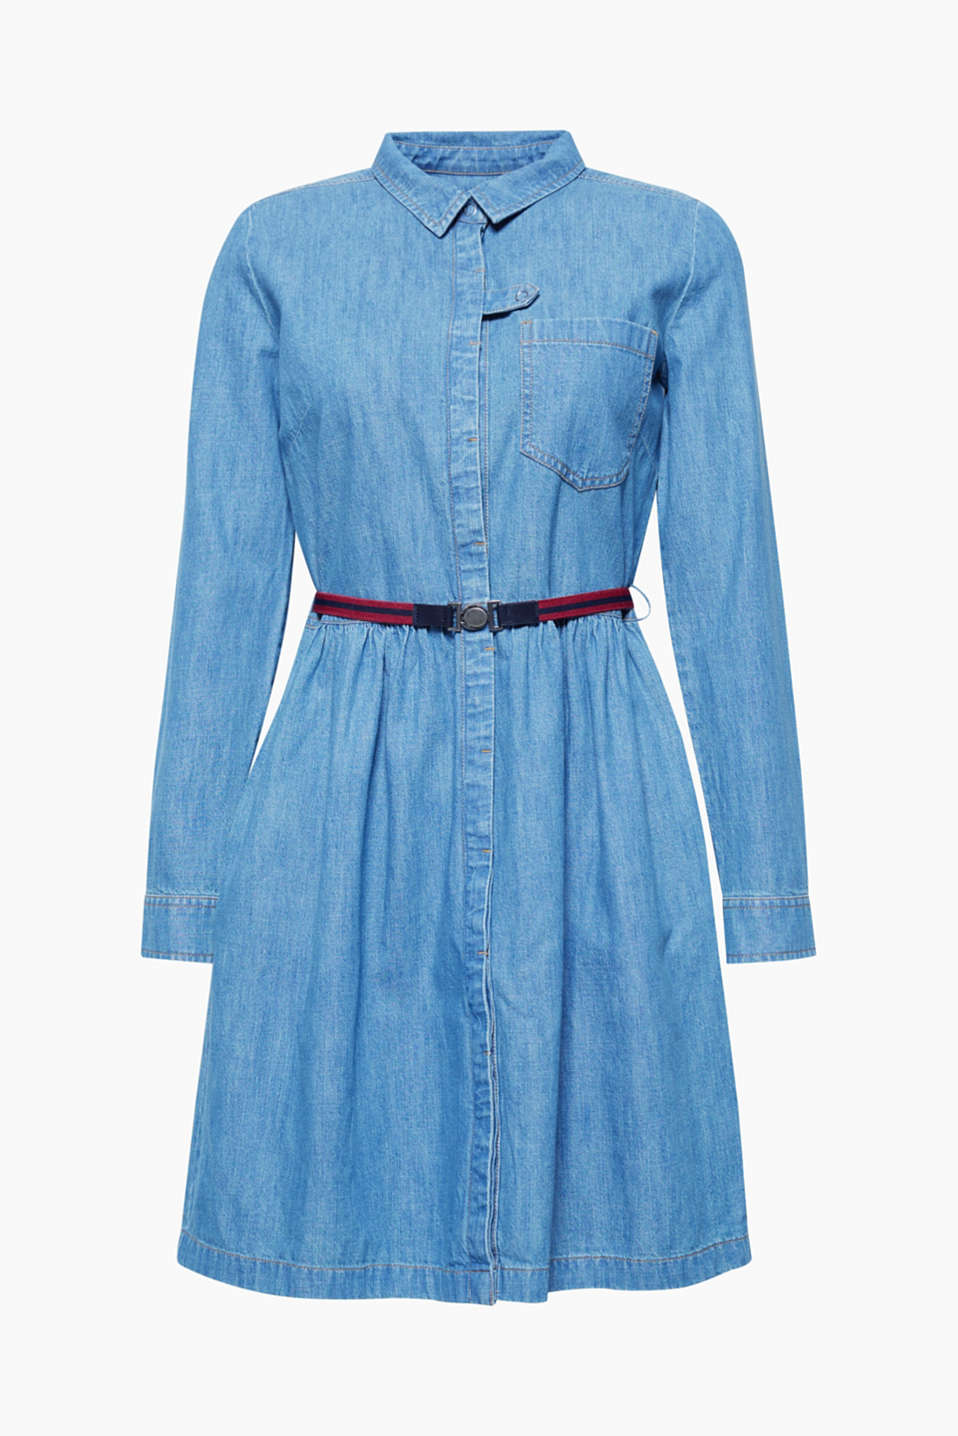 This flared A-line dress in pure cotton denim is casual and feminine at the same time.